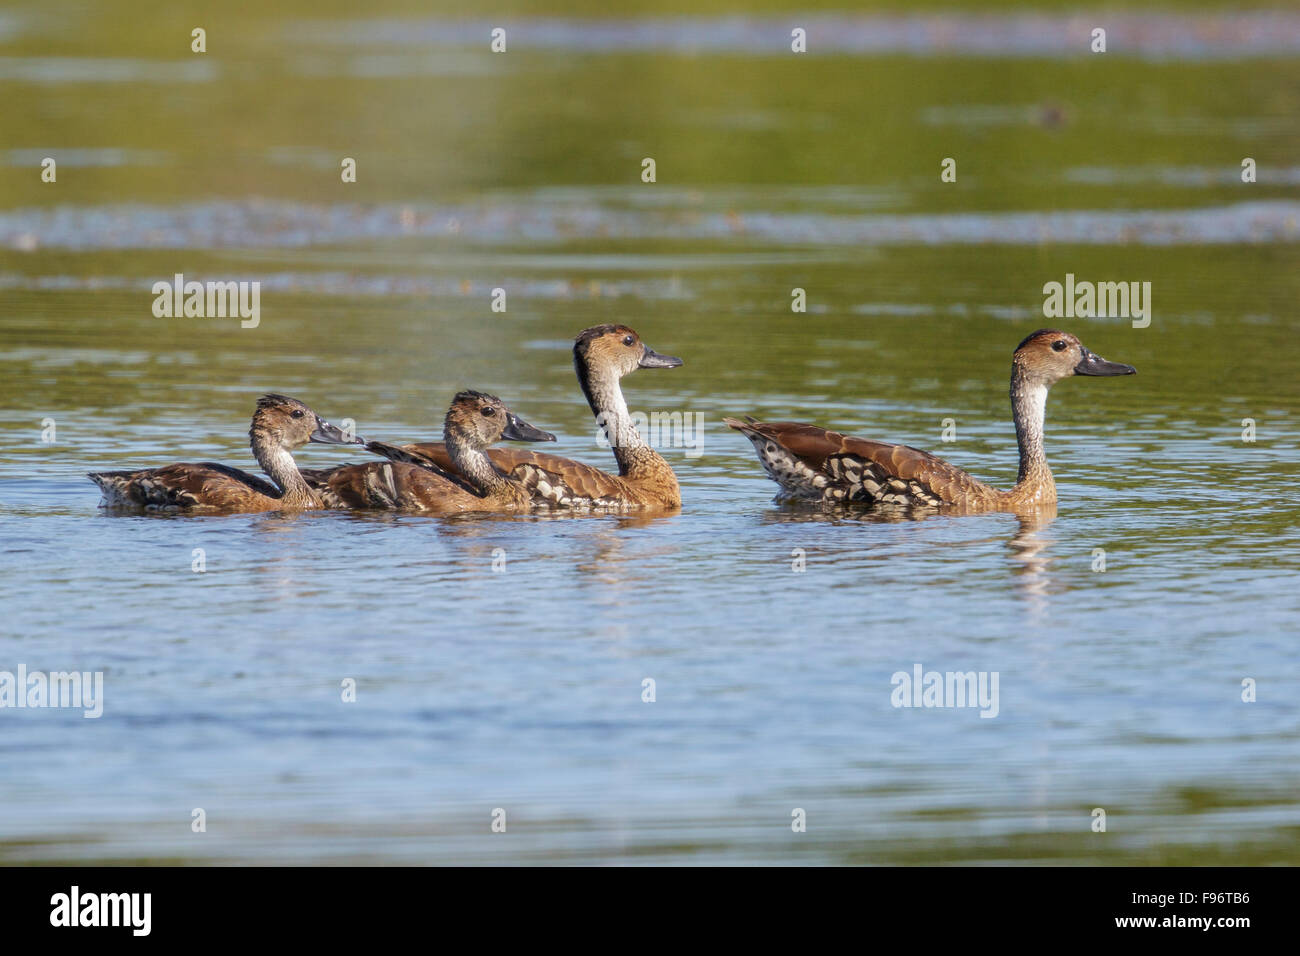 West Indian Whistling Duck (Dendrocygna arborea) feeding in a lagoon in Cuba. Stock Photo